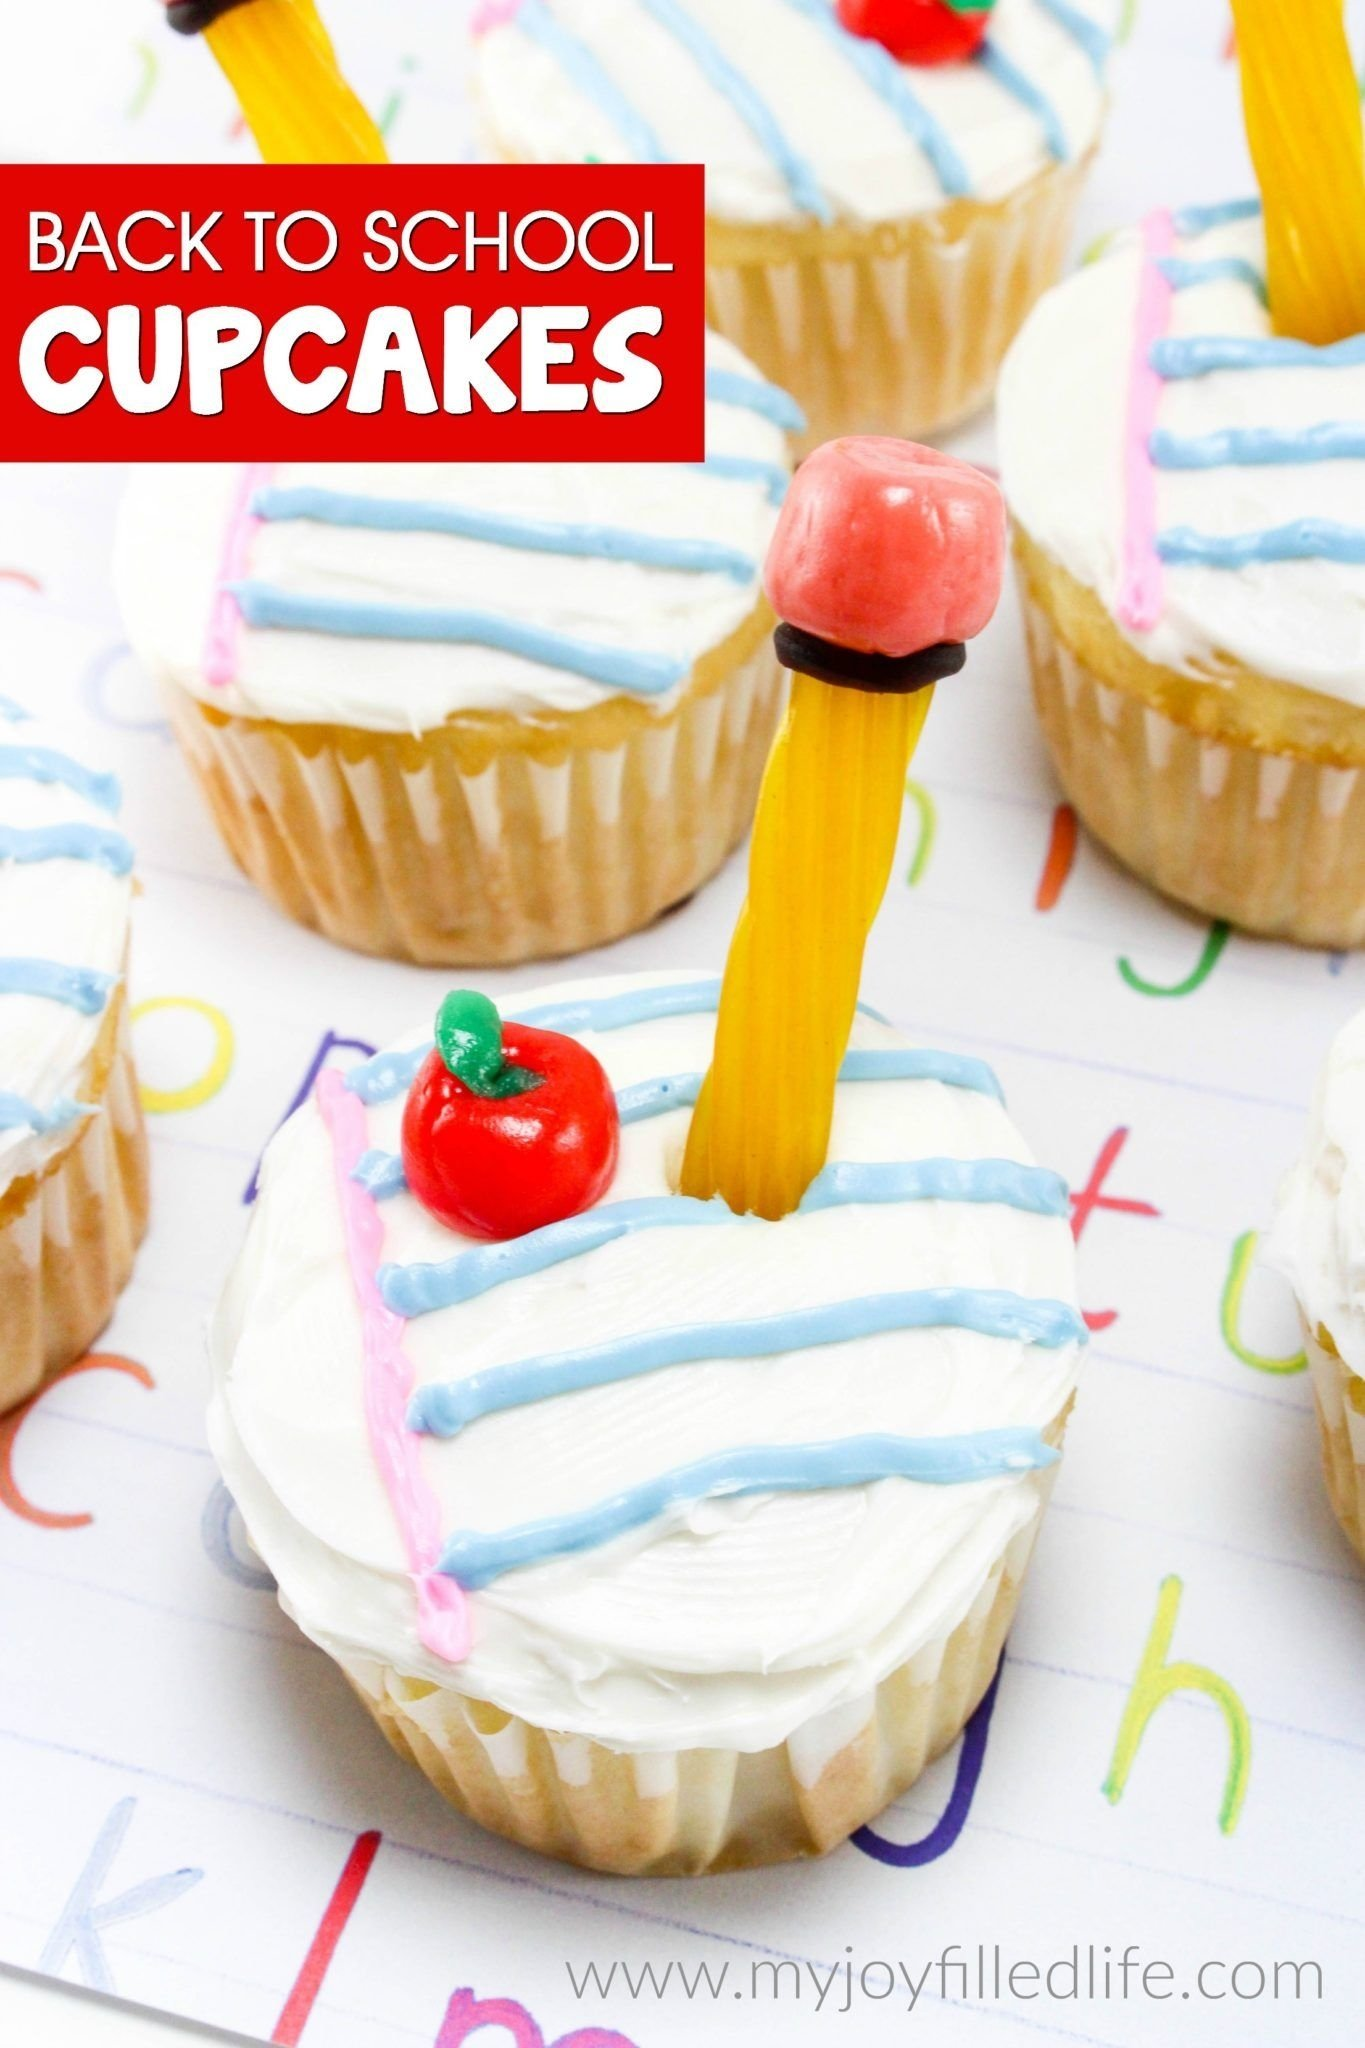 10 Lovely Back To School Cupcake Ideas easy to make back to school cupcakes school cupcakes food diary 2020